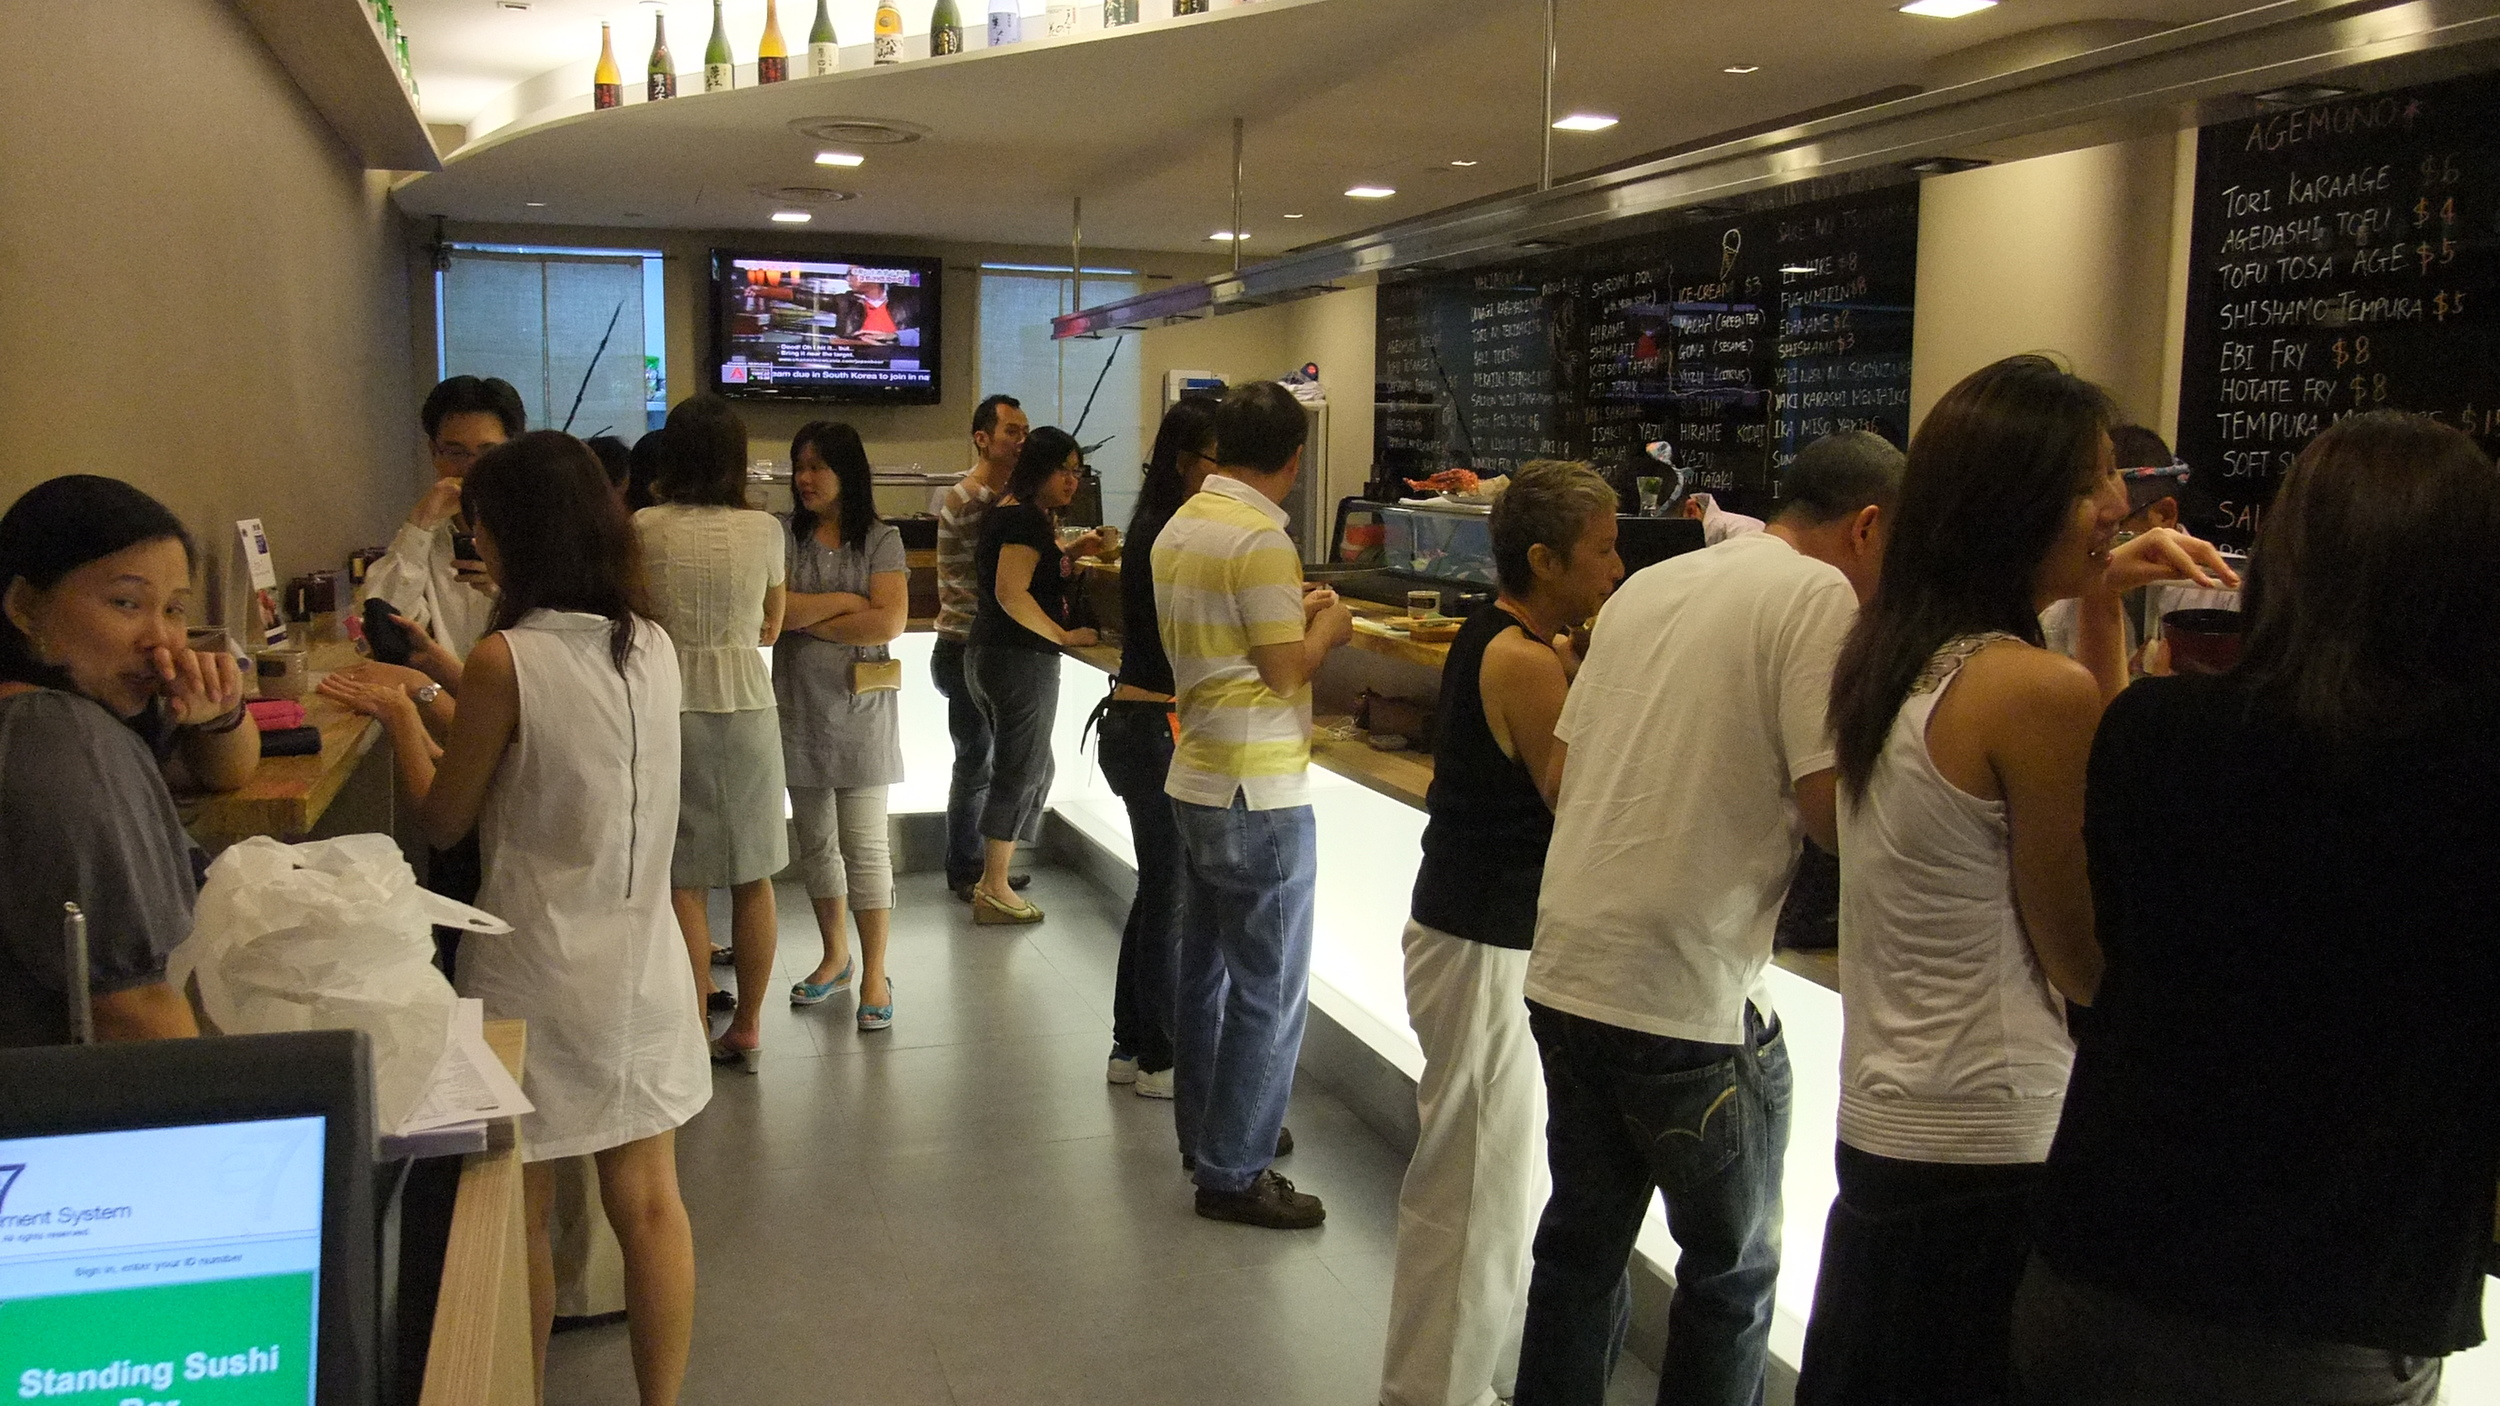 The original Singapore Standing Sushi Bar located at One Raffles Place.